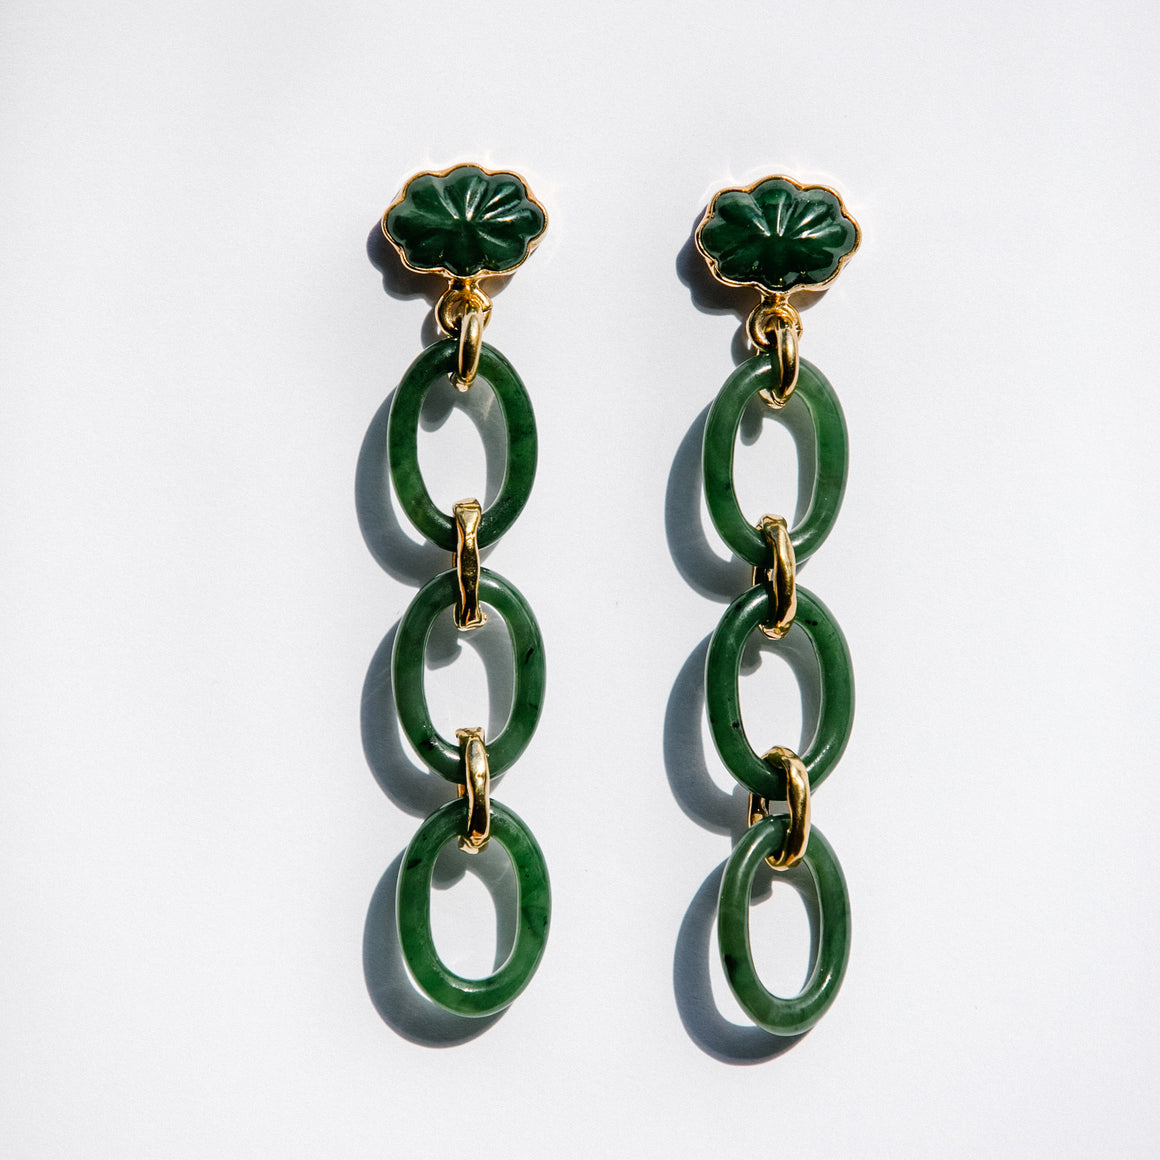 GOLD JADE CHAIN EARRINGS